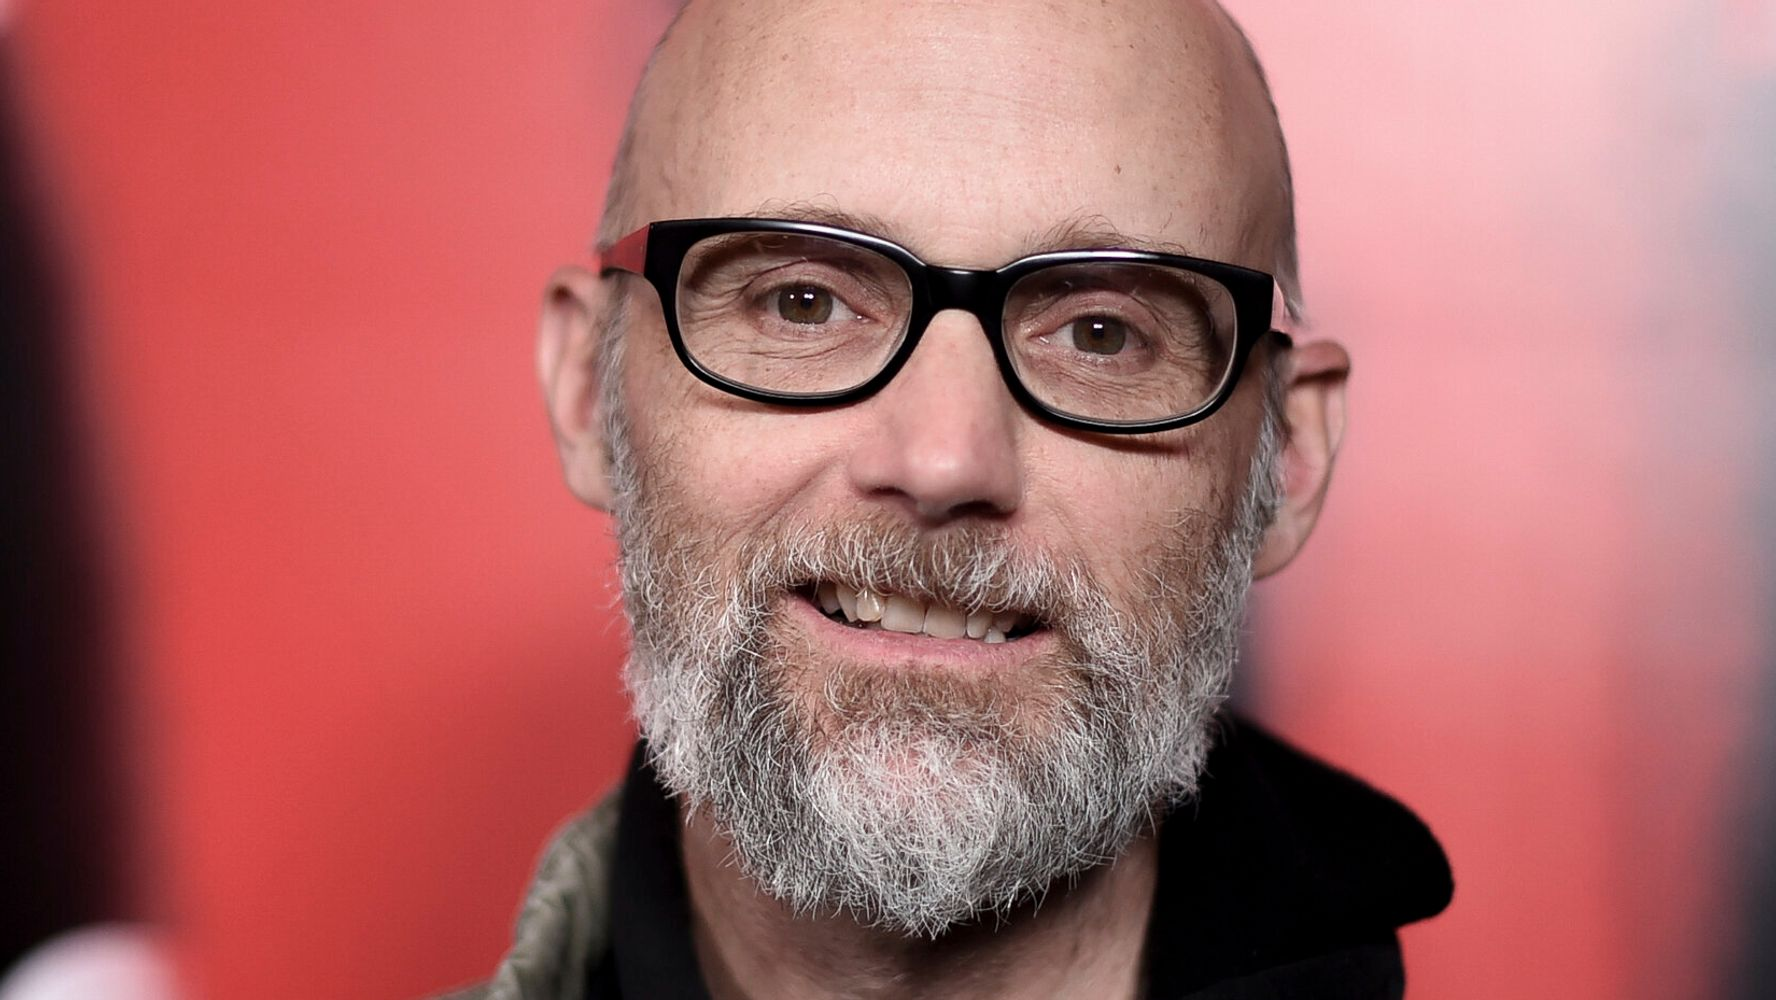 Moby's 'Vegan For Life' Neck Tattoo Is Already Dividing The Internet